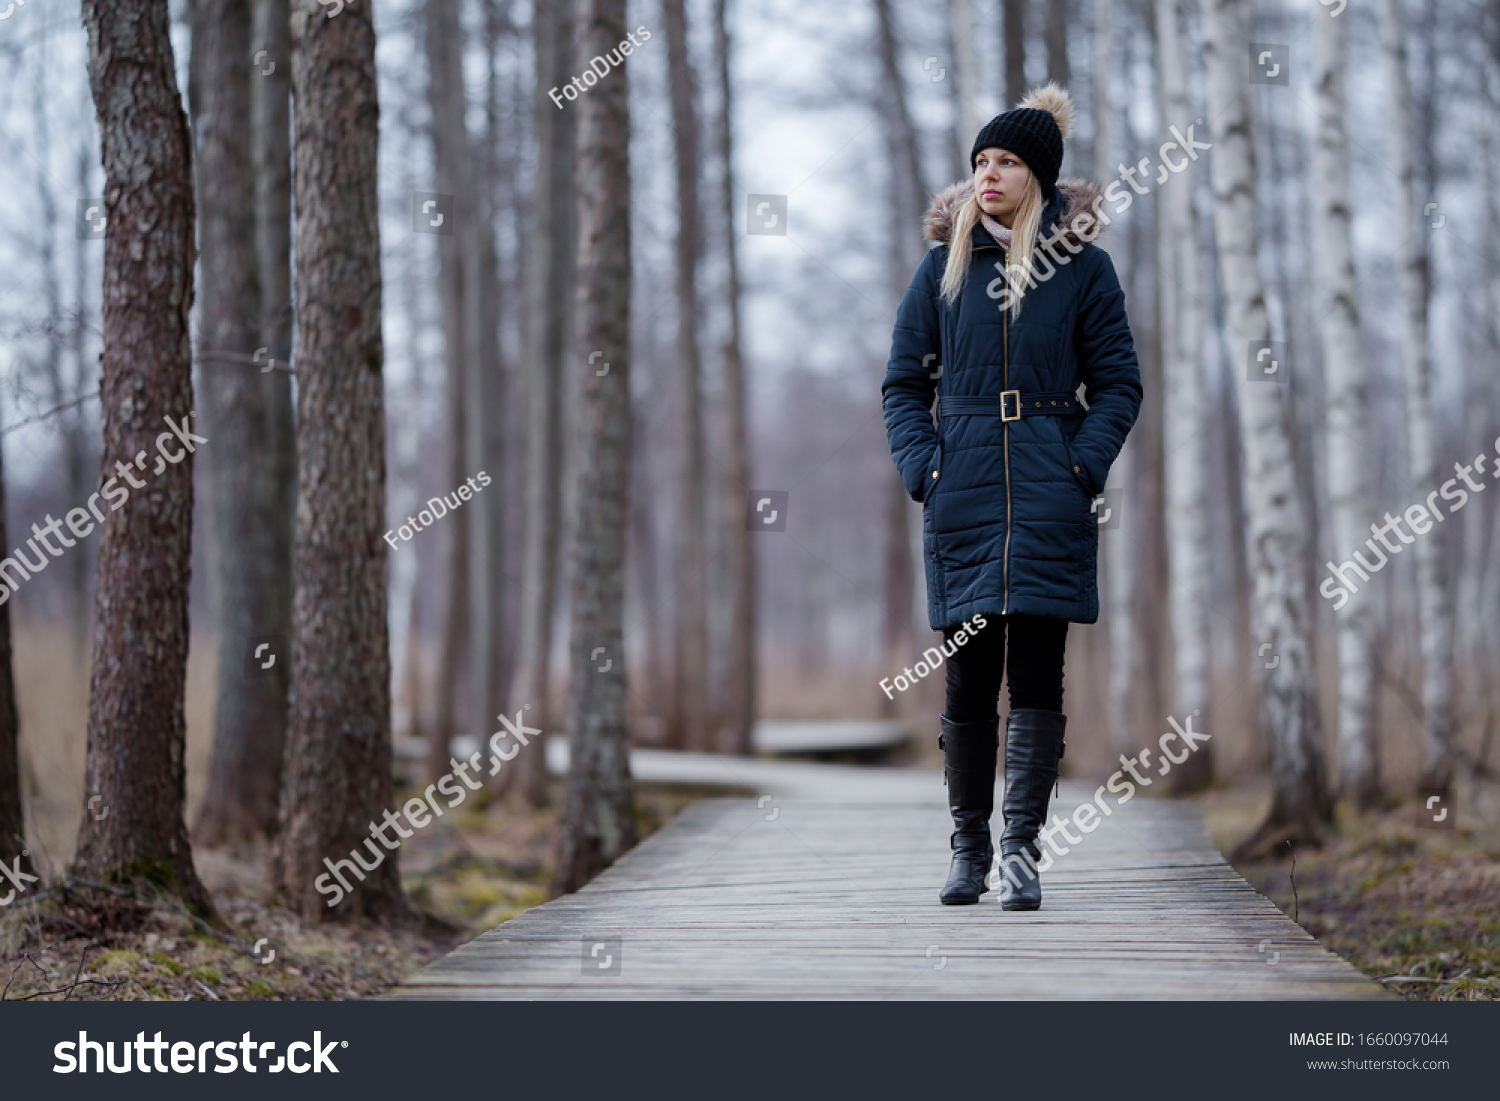 Young woman in dark warm clothes slowly walking on wooden trail at natural park. Cold overcast day. Spending time alone in nature. Peaceful atmosphere. Front view.